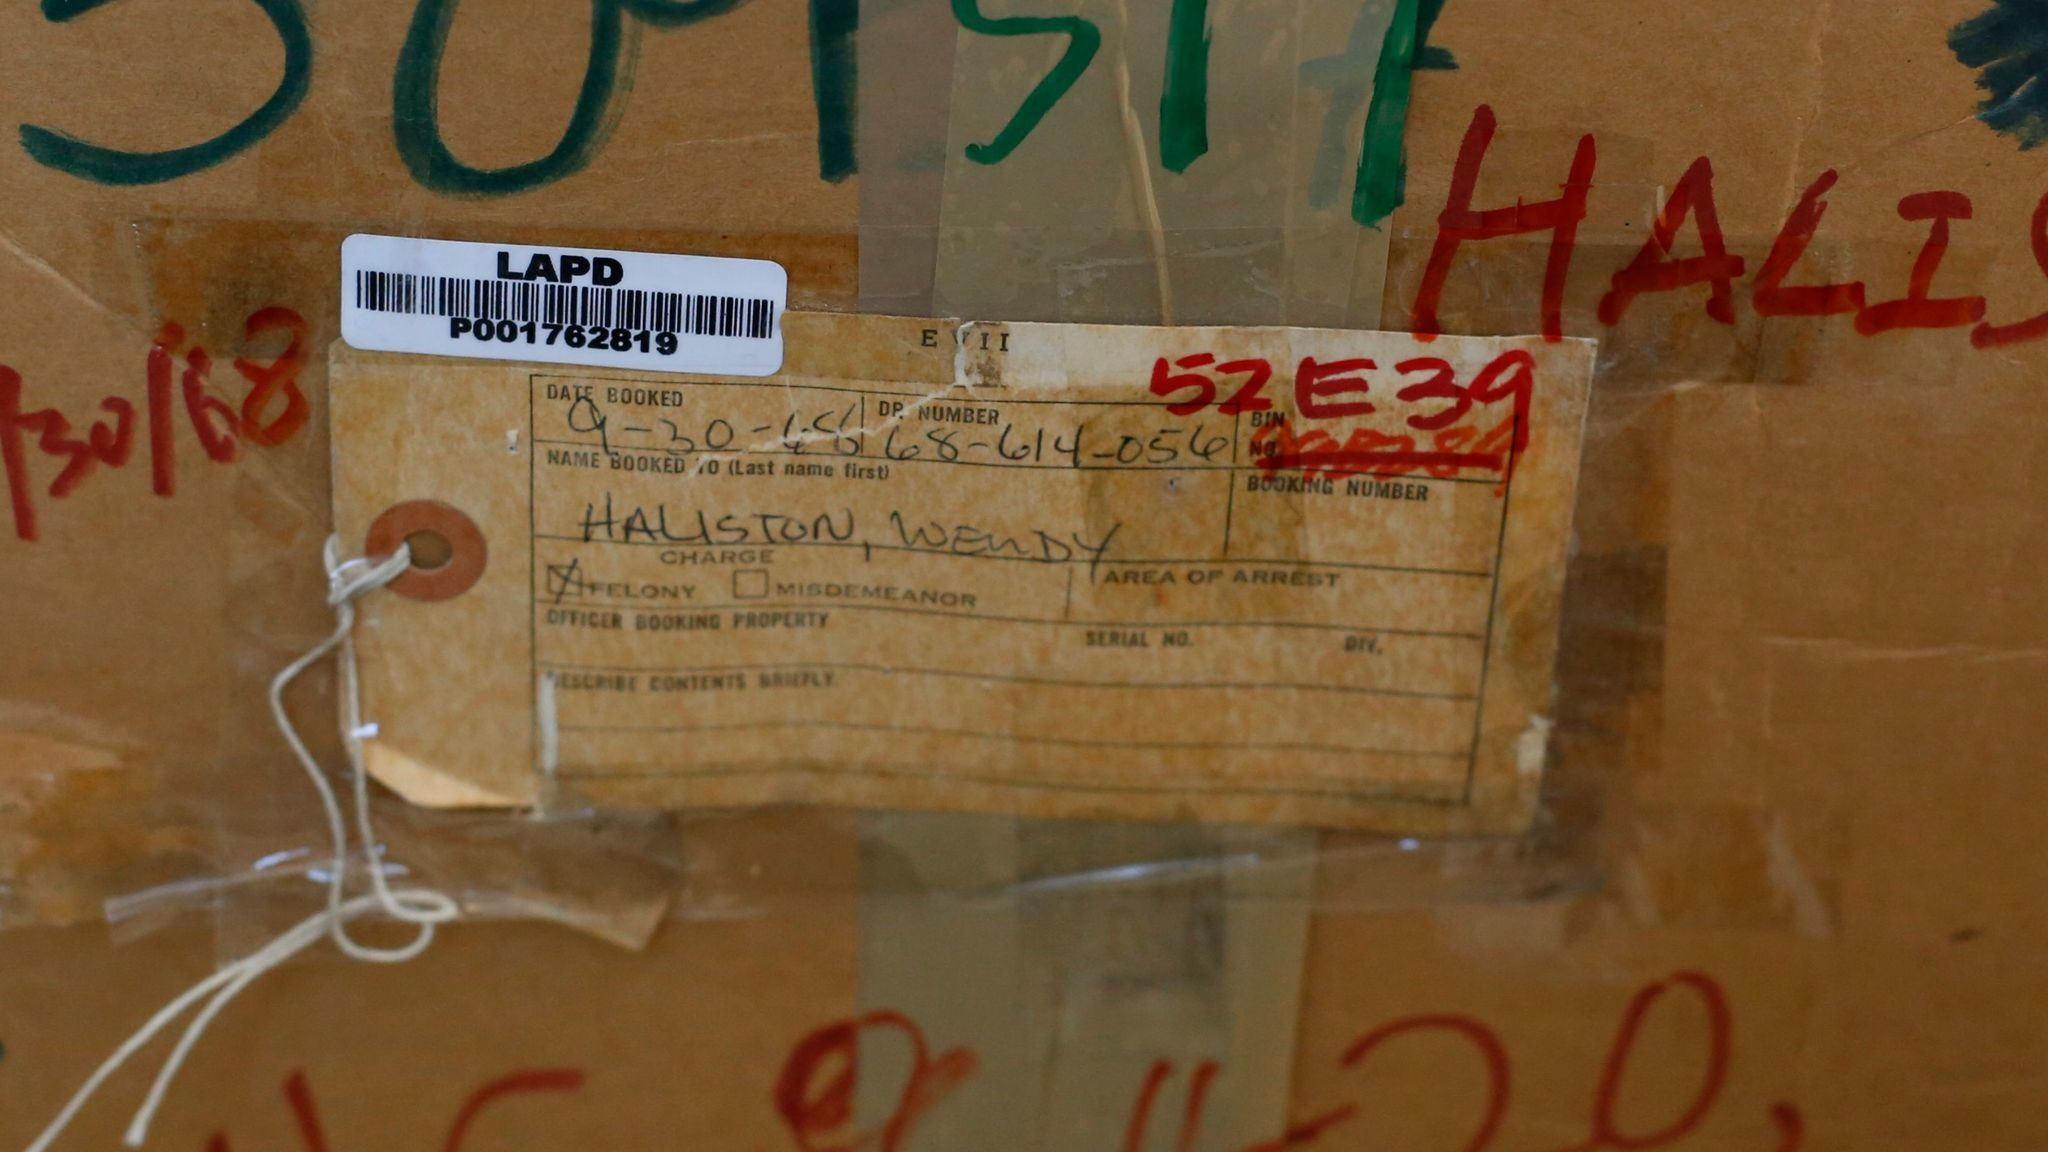 For decades, Wendy Jo Halison's belongings sat in two cardboard boxes at the LAPD, the original evidence tag from 1968 still taped to one of the boxes.